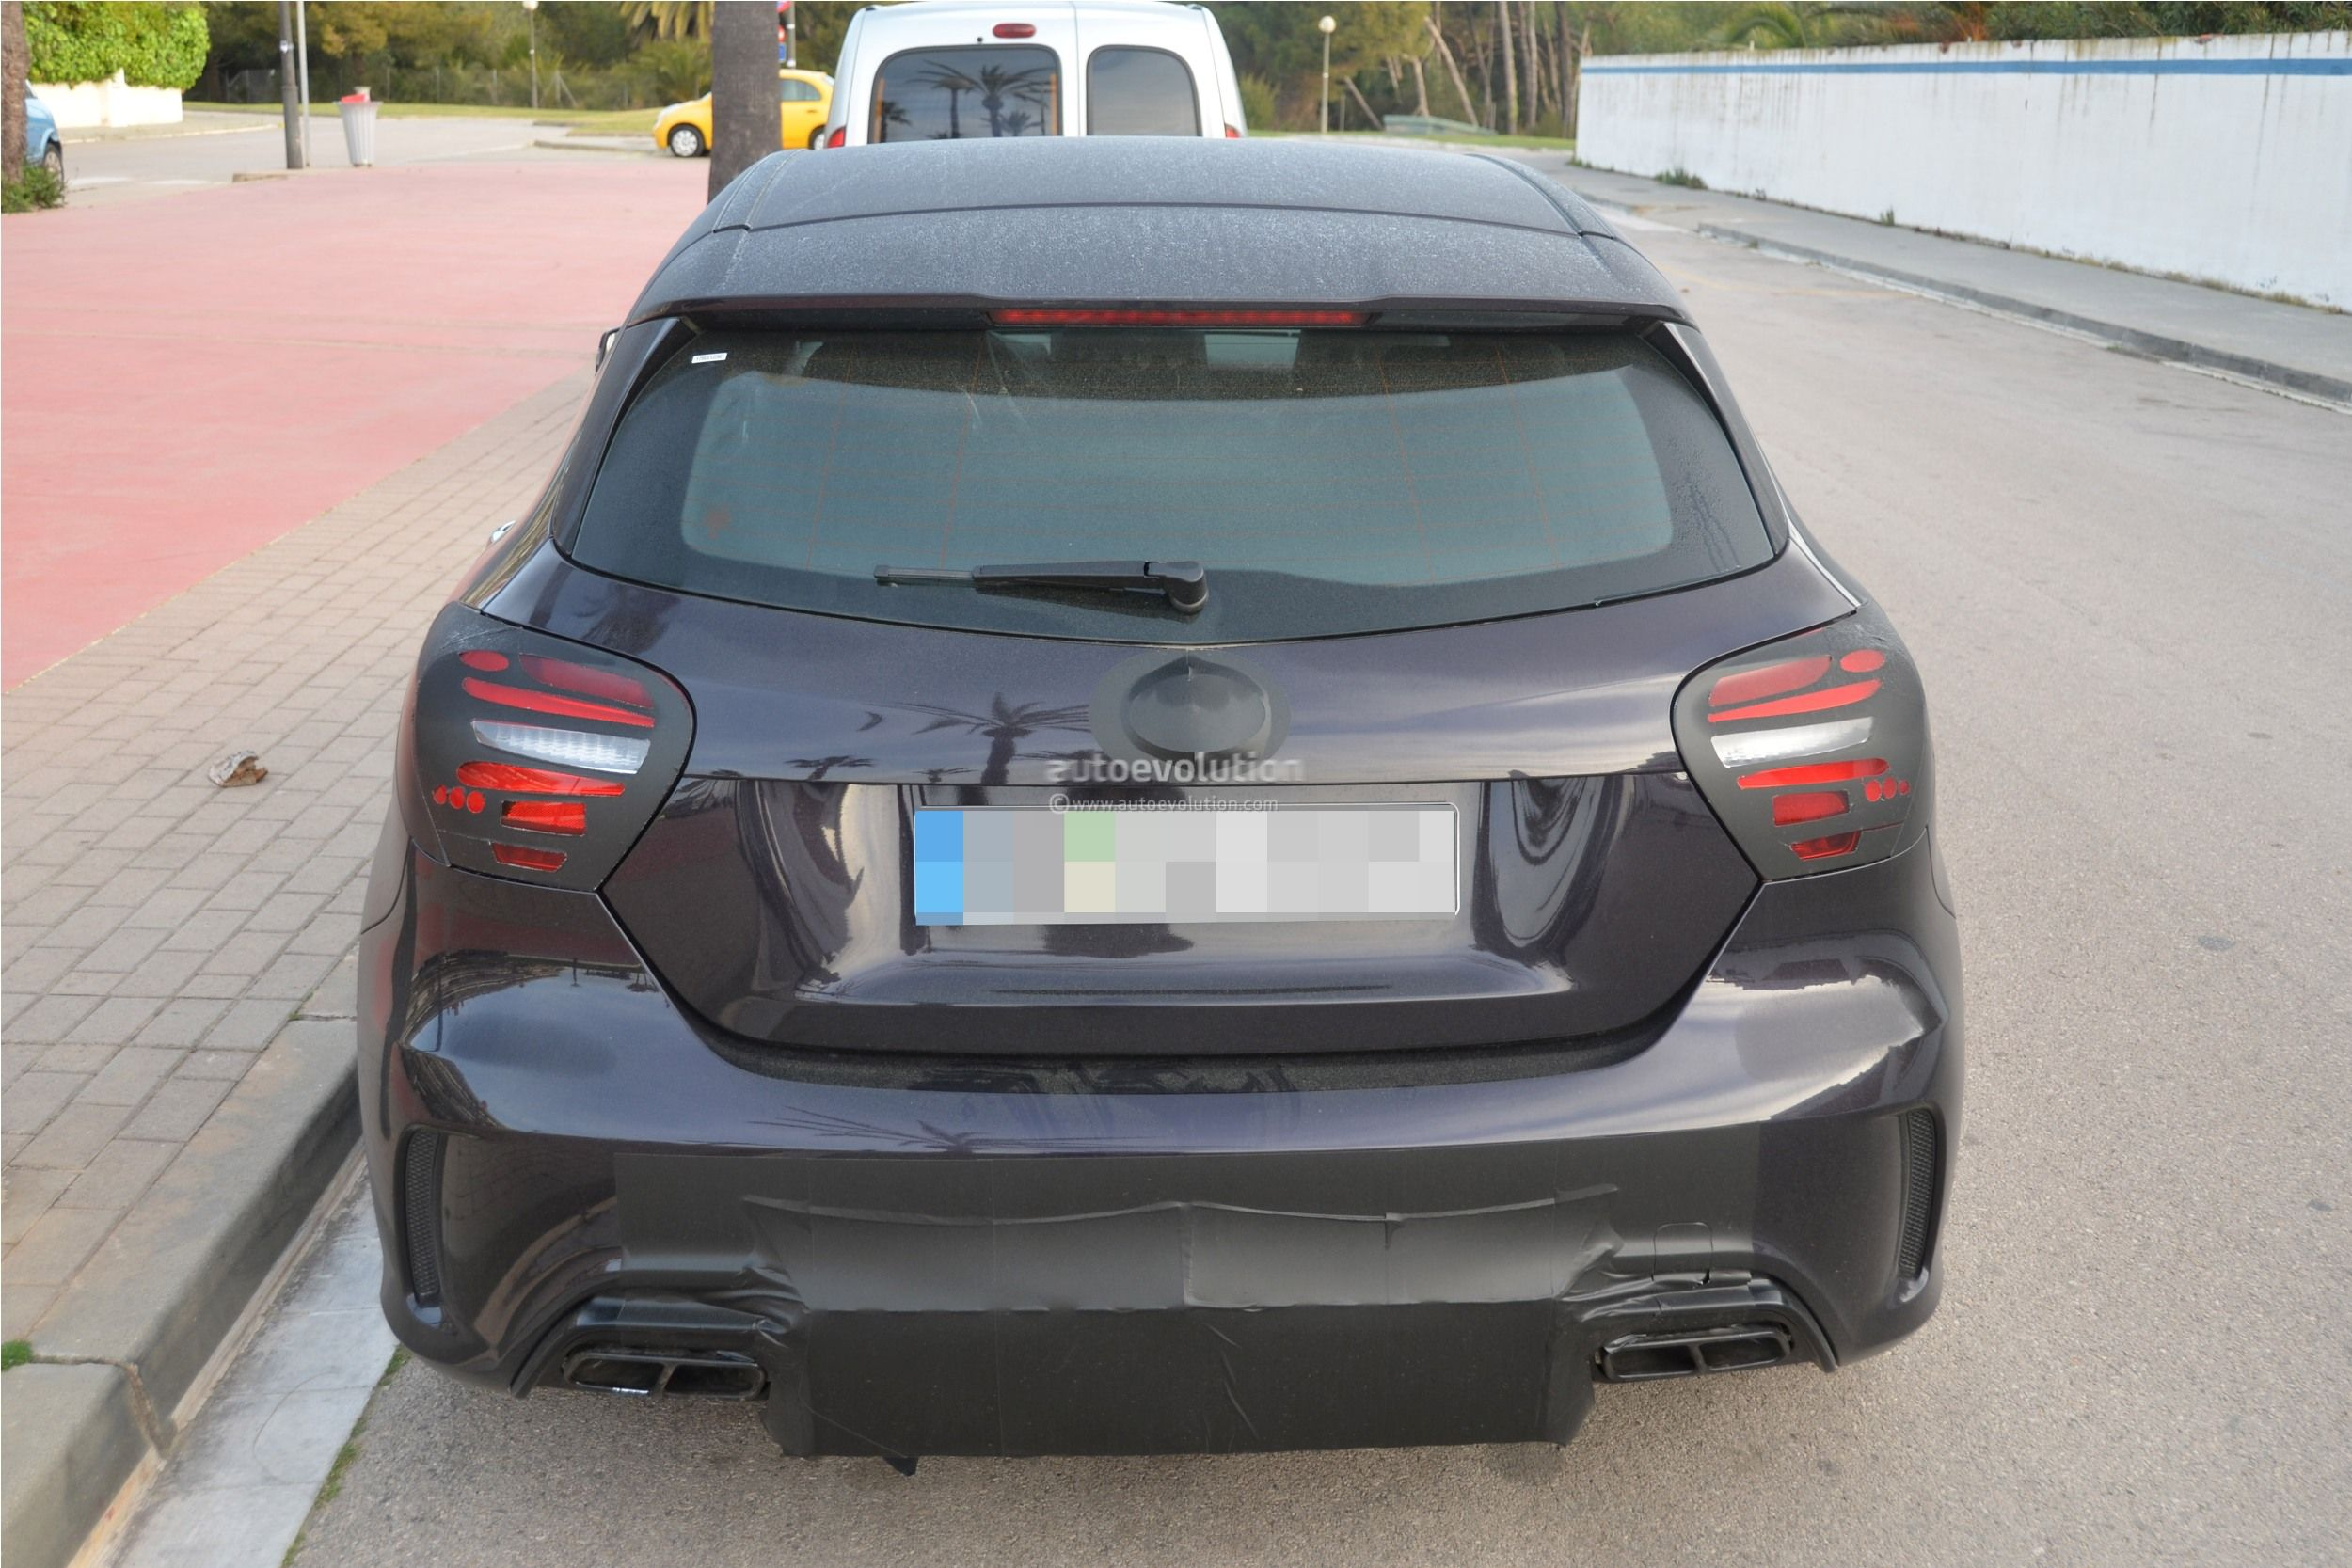 2016 - [Mercedes] Classe A restylée - Page 5 2016-mercedes-benz-a-45-amg-facelift-spied-photo-gallery_7